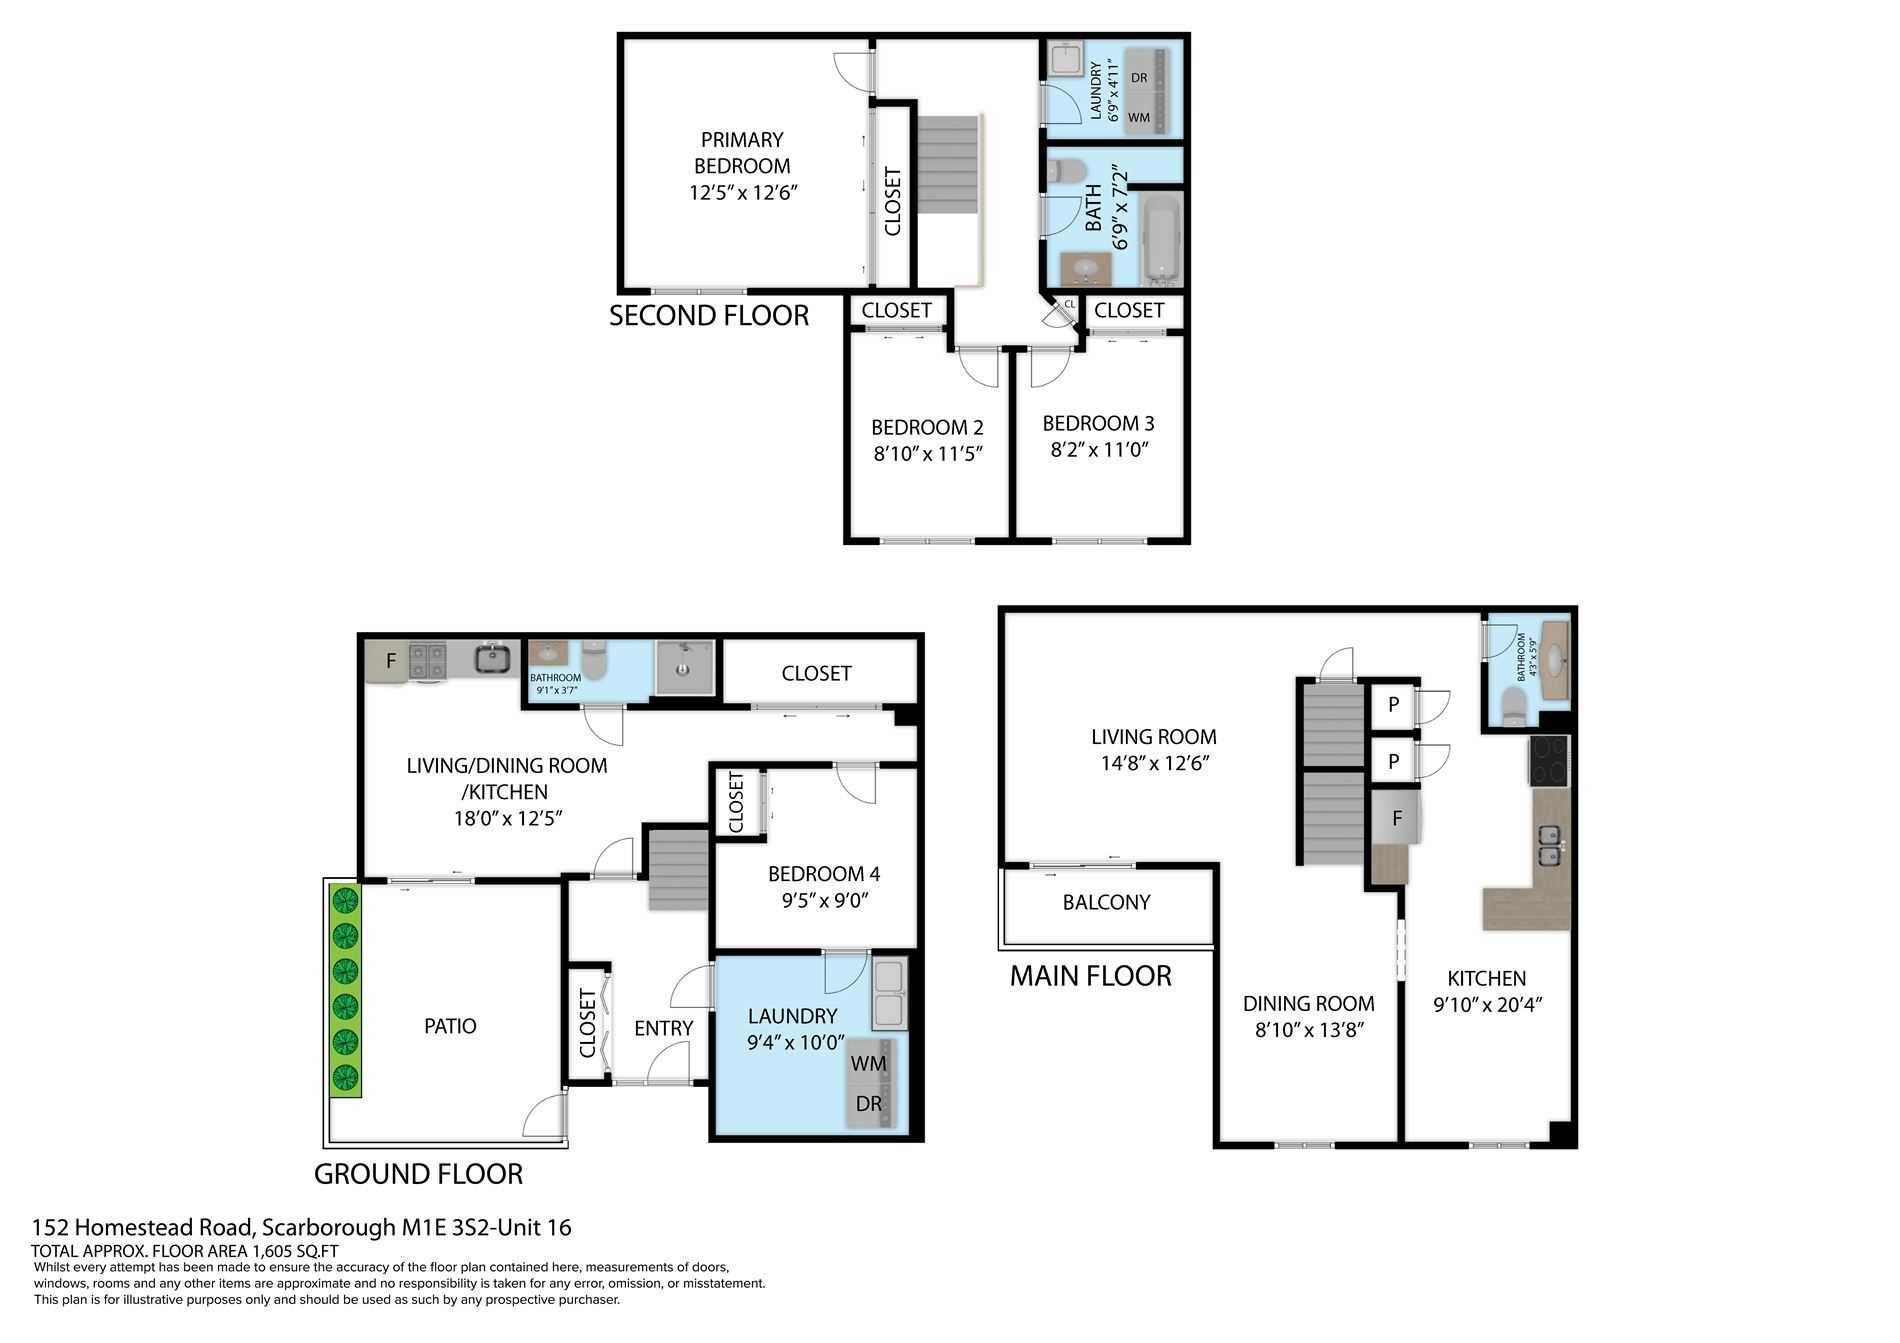 152 Homestead Rd, unit 16 for sale in Toronto - image #2